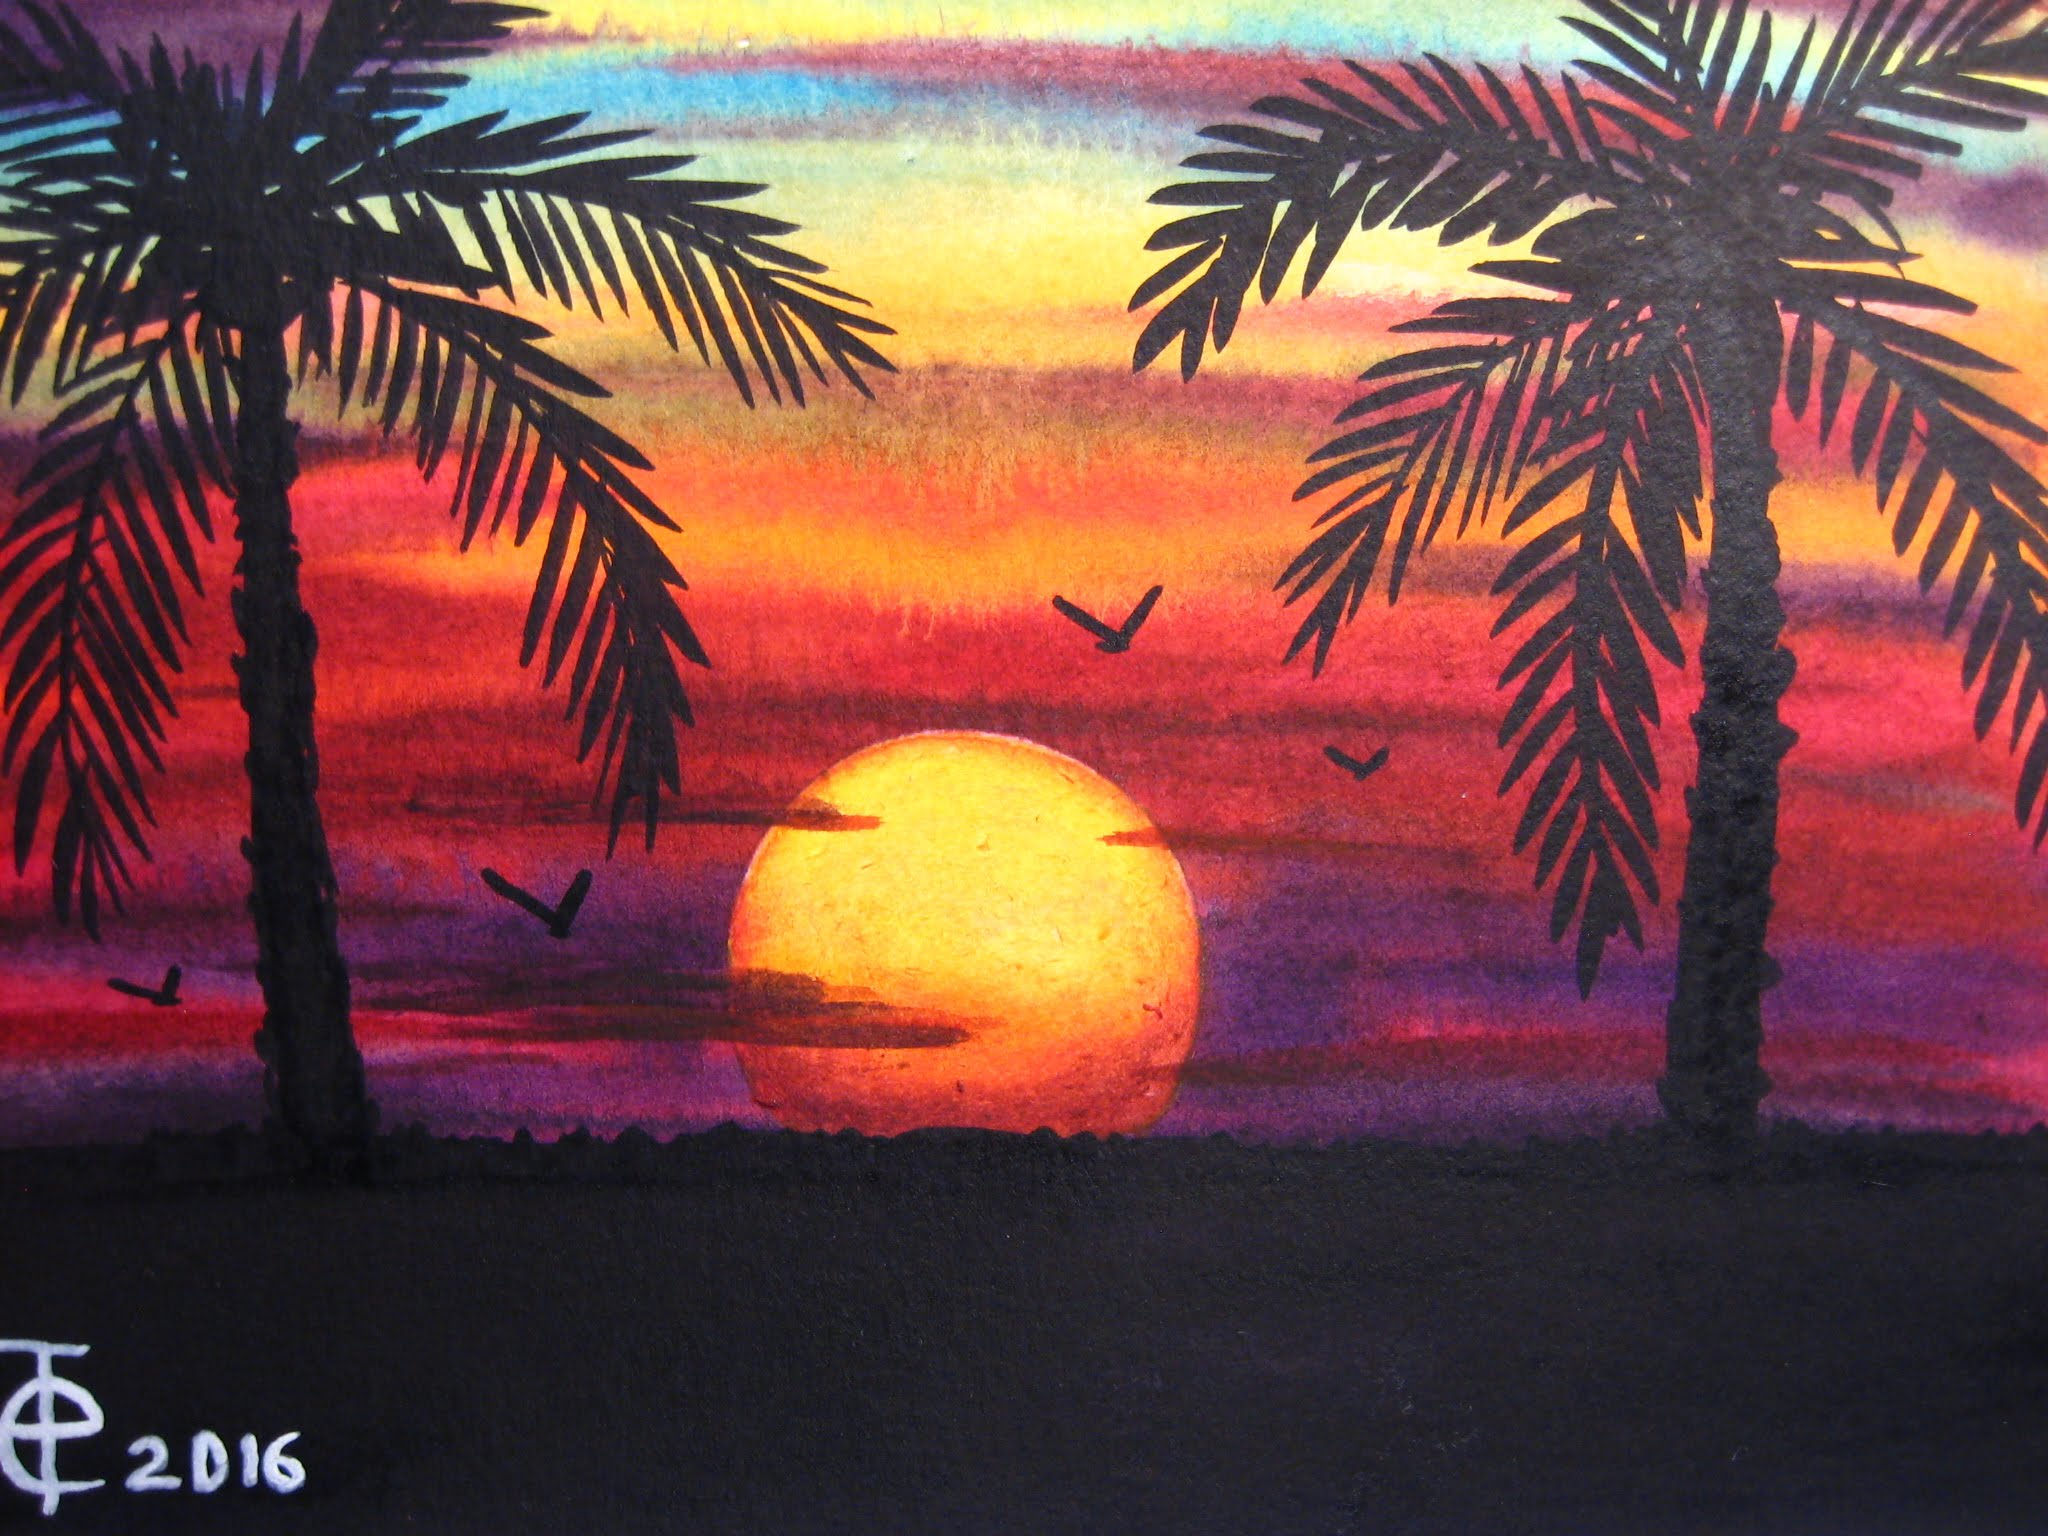 2048x1536 Watercolor Painting Sunset With Palm Trees